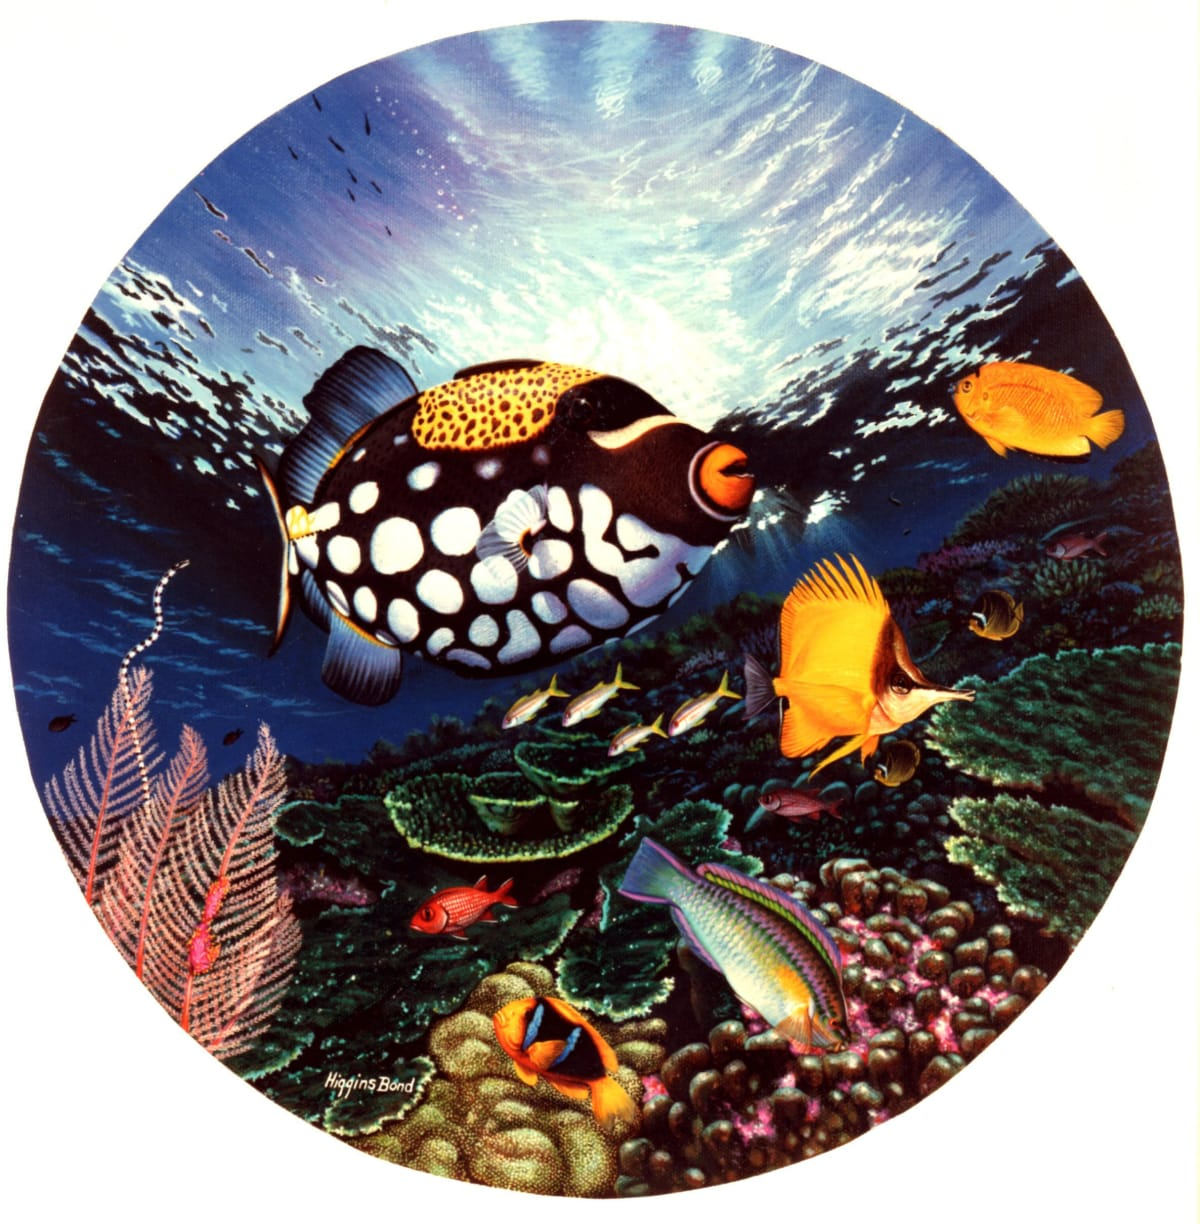 "Higgins Bond Shimmering Reef Dwellers, 1990 Acrylic on canvas 18"" x 18"""